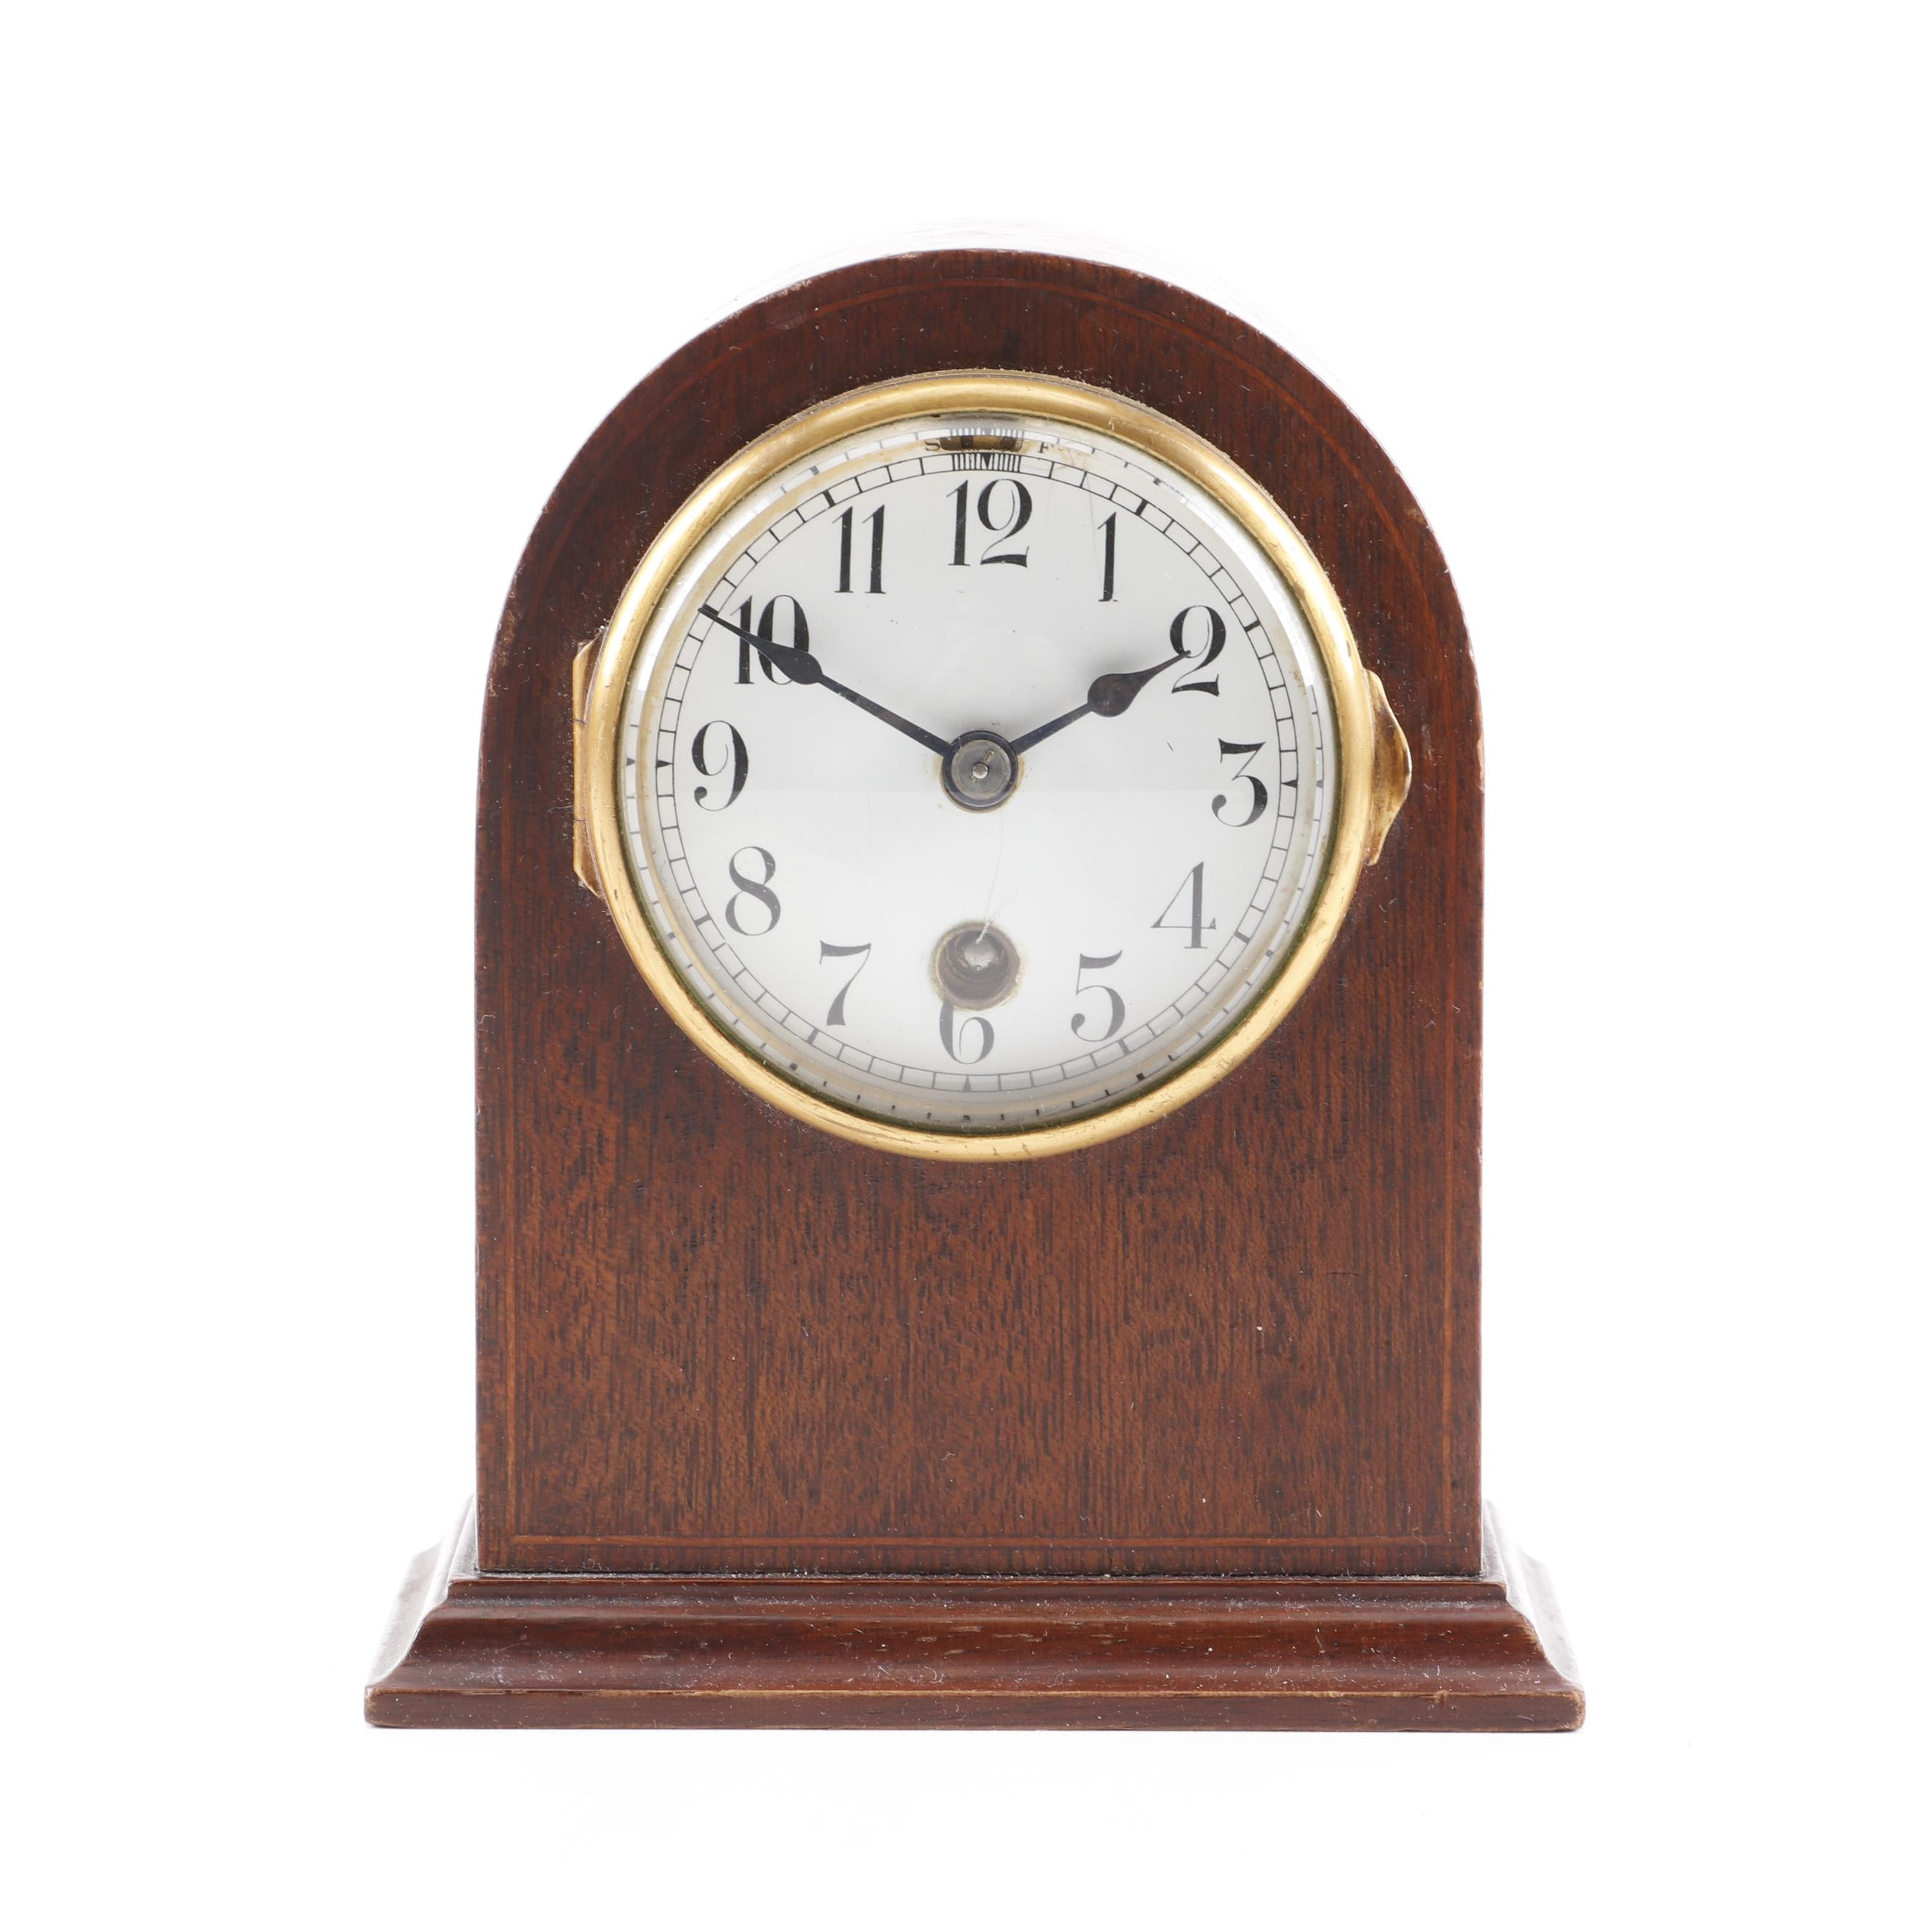 Chelsea Clock Co. Desk Clock with Inlaid Case, 1910-1914